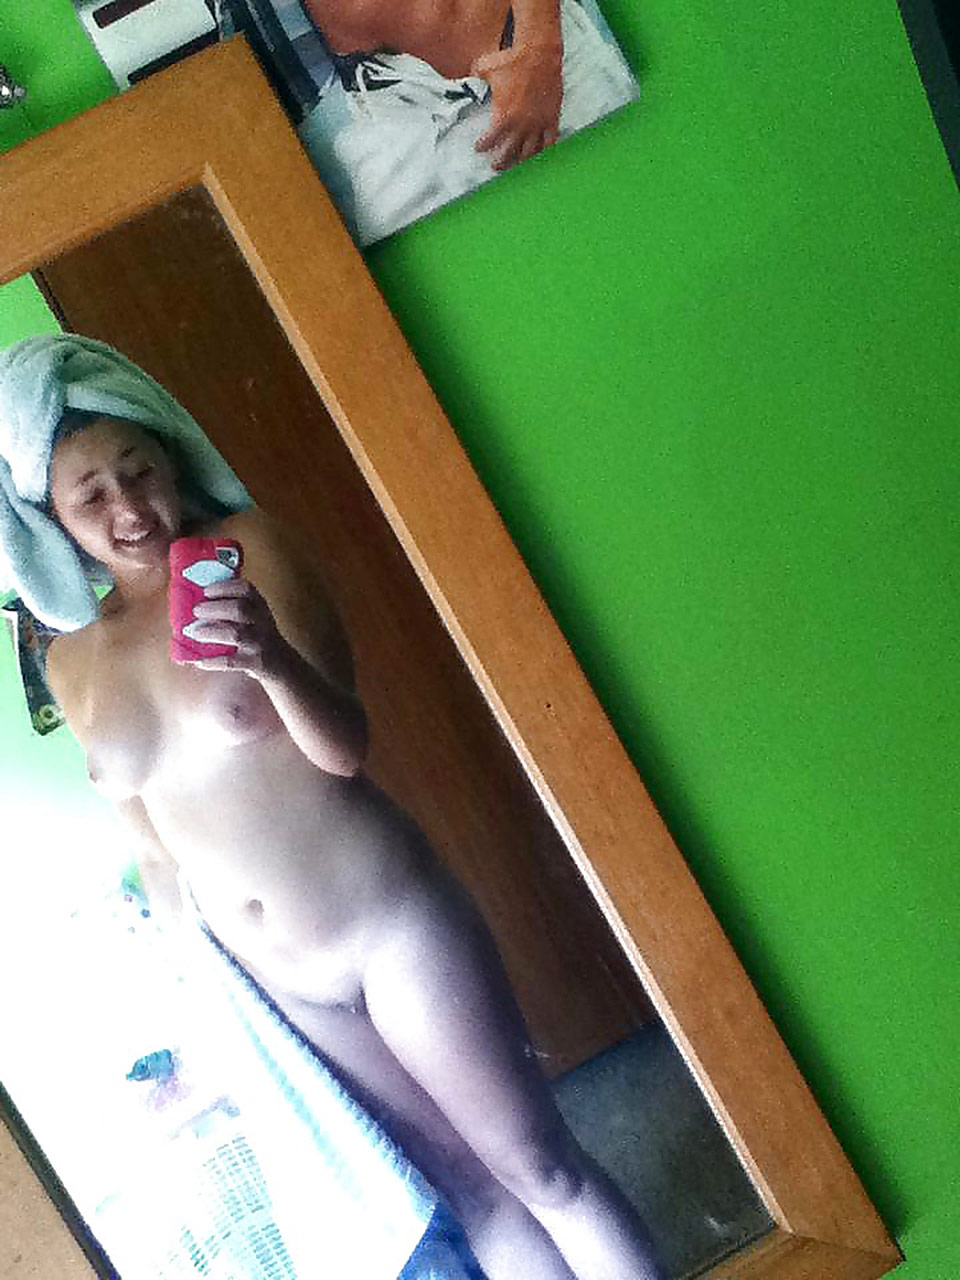 20 Lia Marie Johnson Nude Leaked